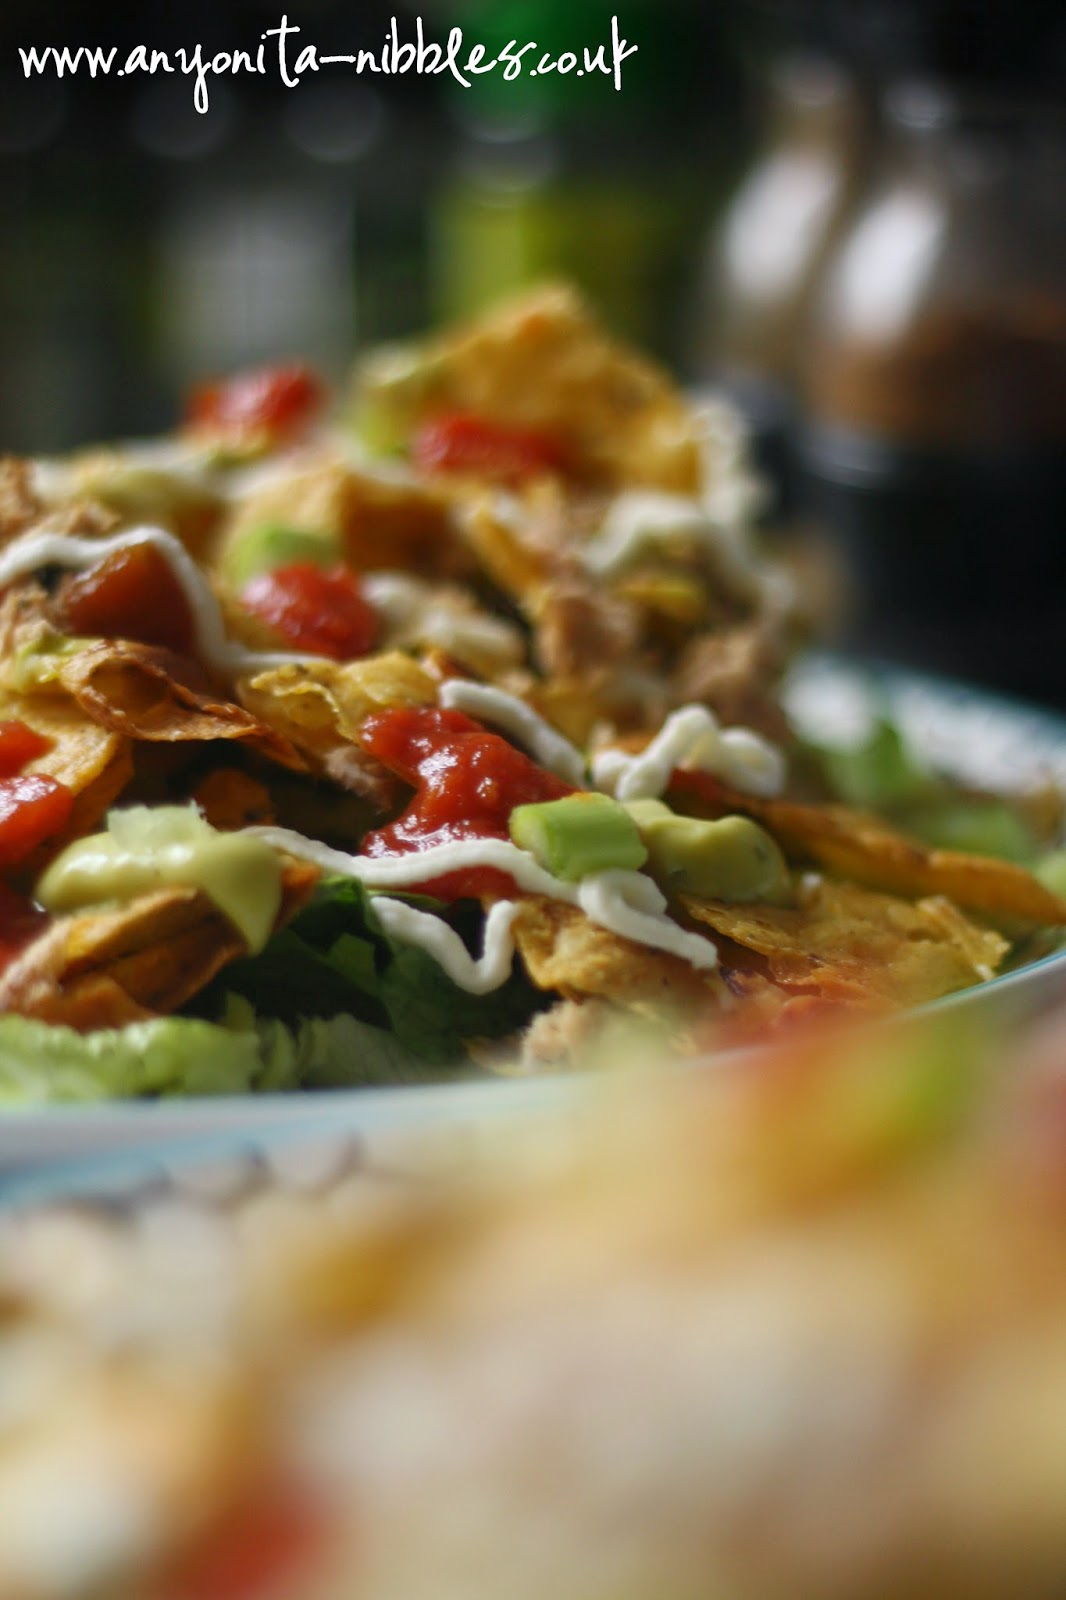 Fully loaded gluten free tuna nacho salad from Anyonita-nibbles.co.uk